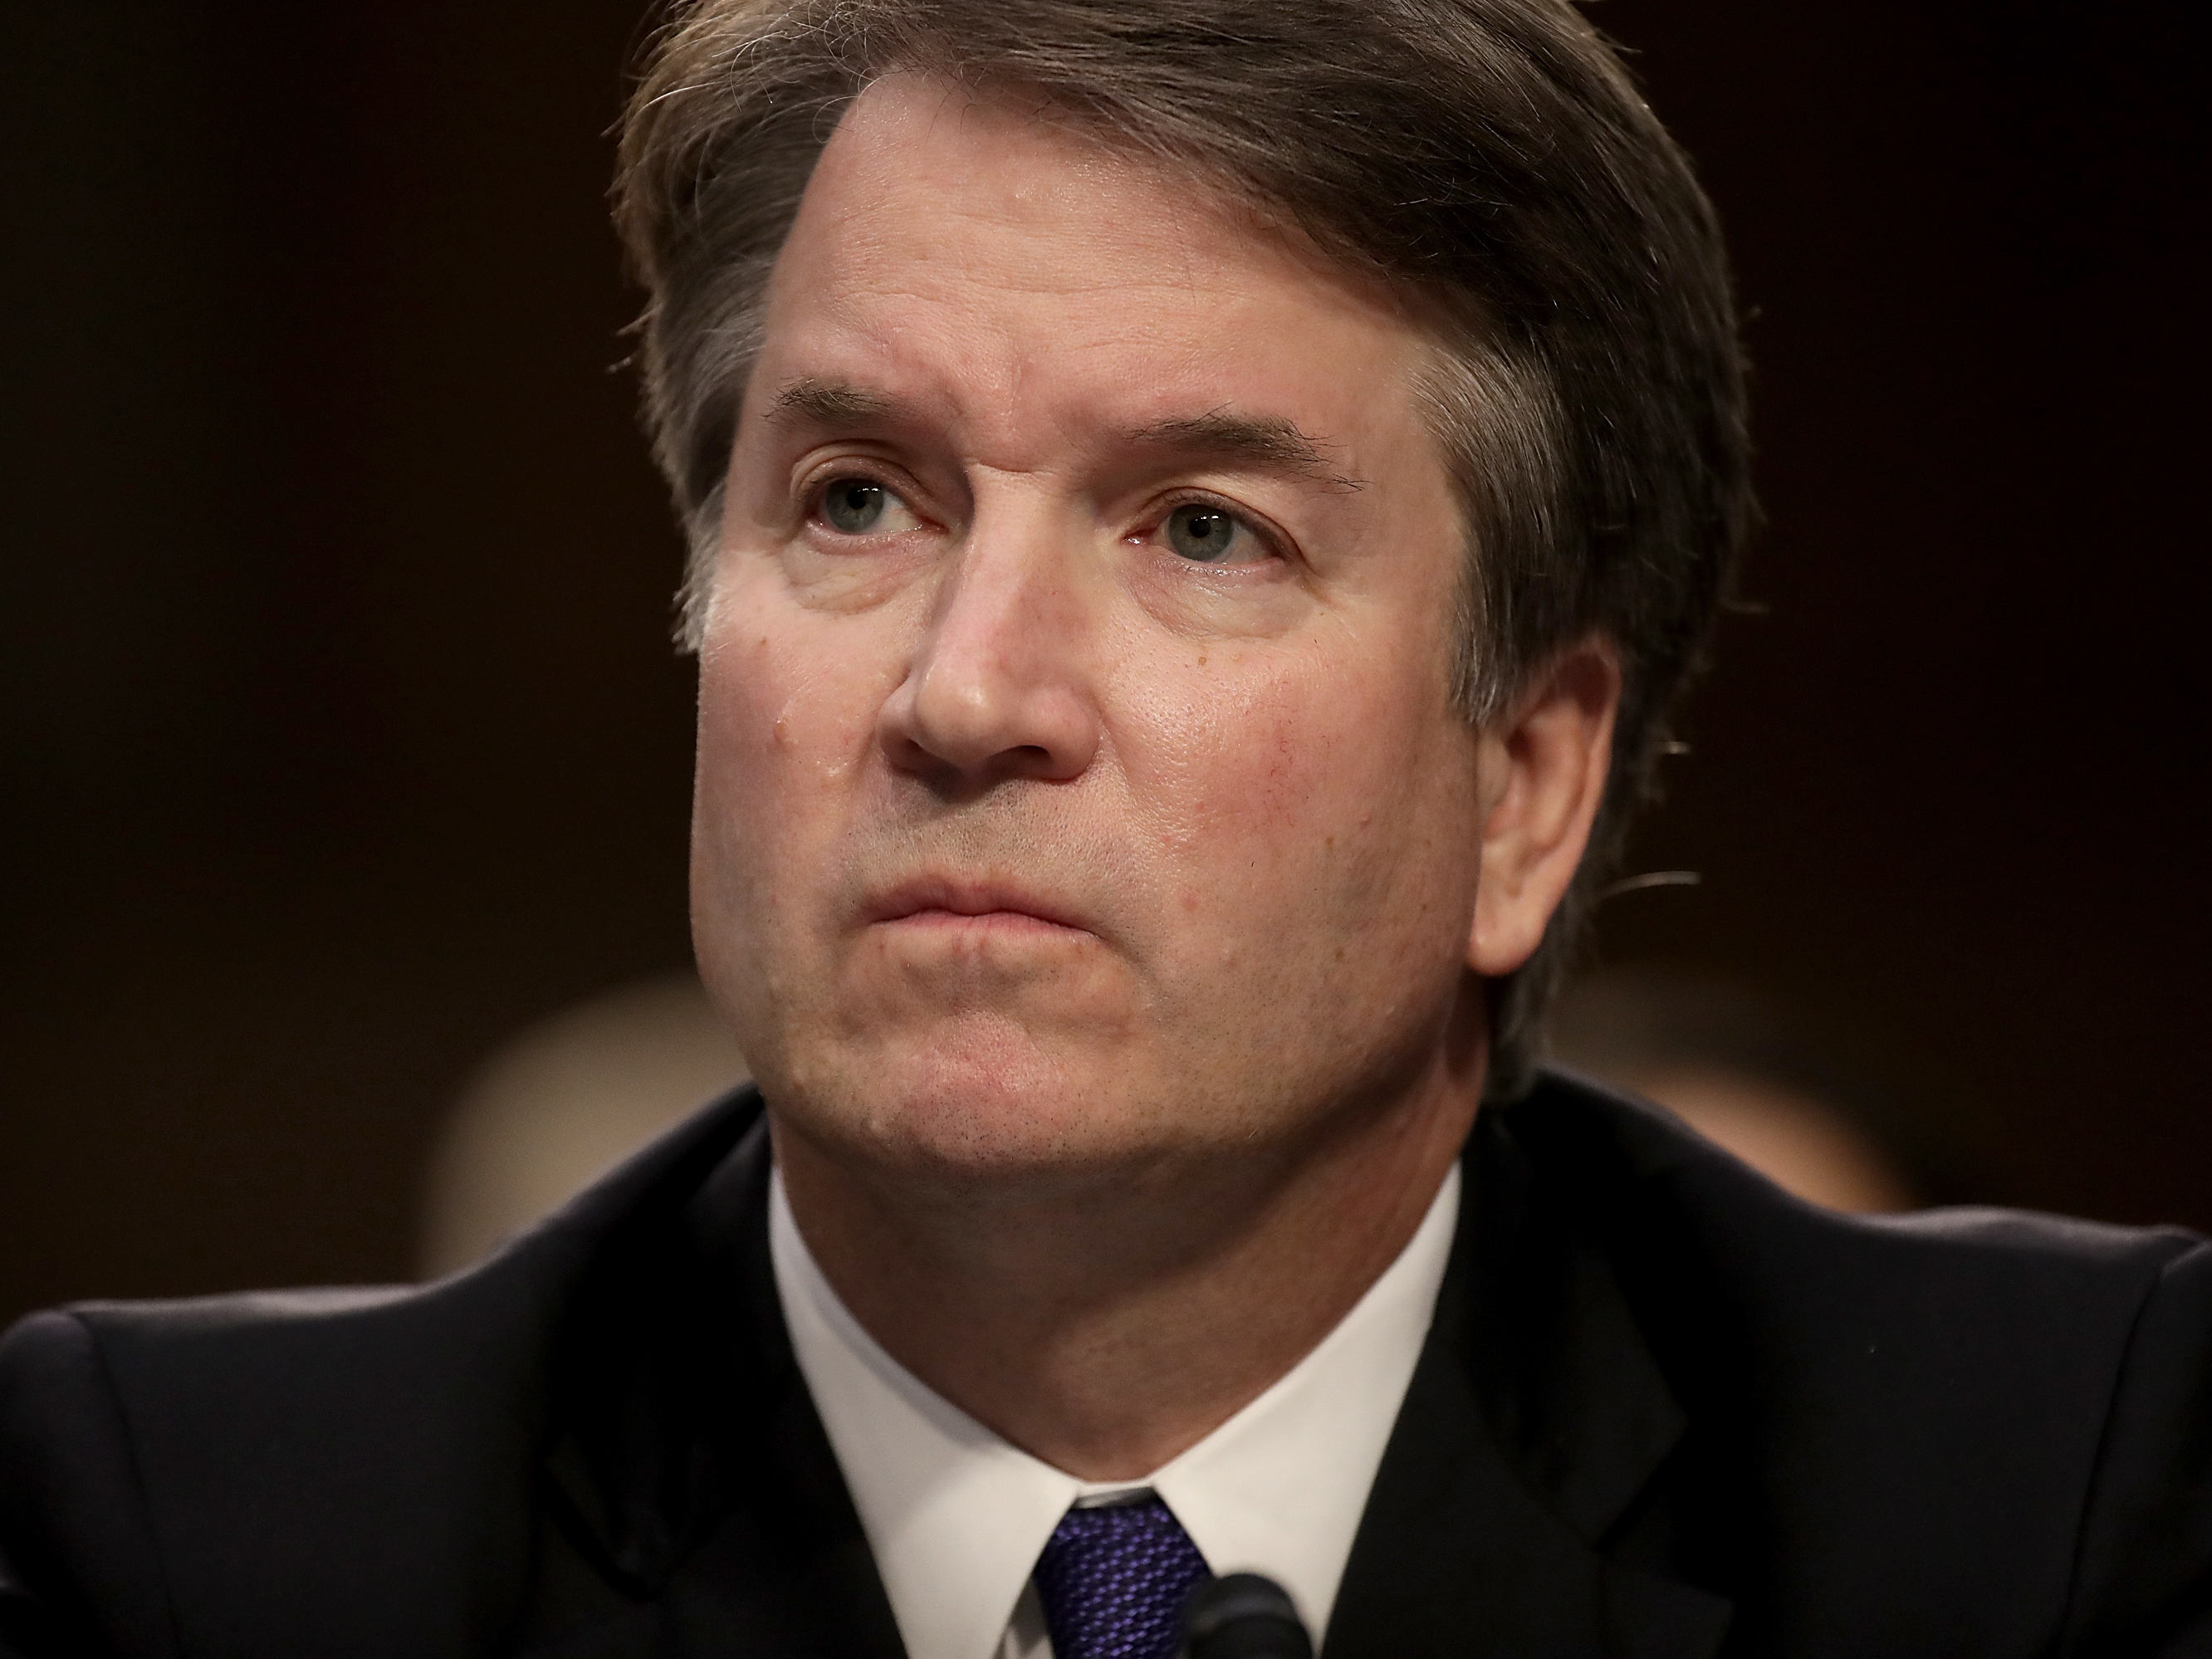 Trump's Supreme Court nominee, accuser face scrutiny at Senate hearing